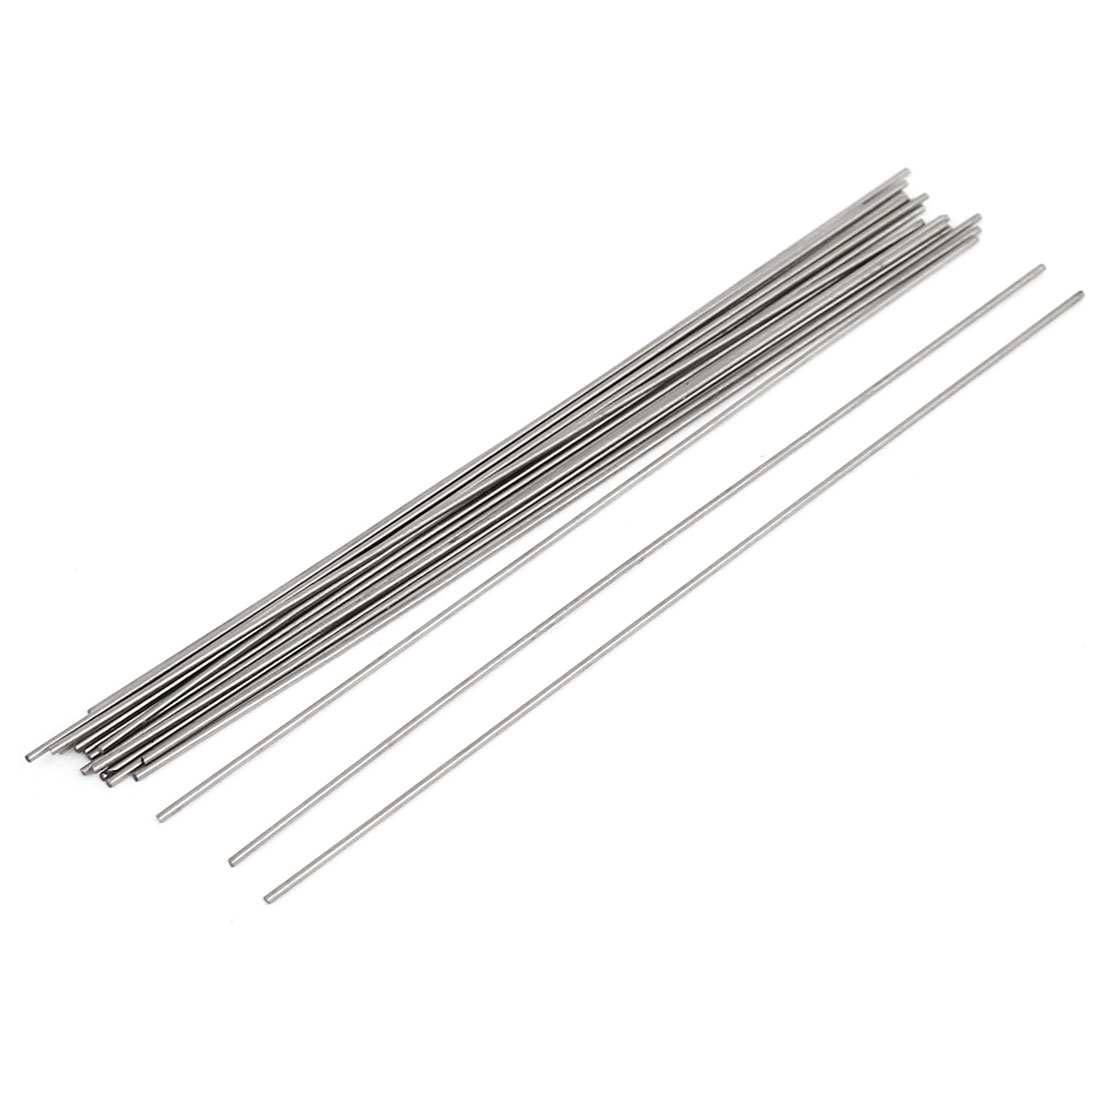 Machine Grooving Tool Steel Round Rod Bar Lathe Tools 0.8mmx100mm 20pcs